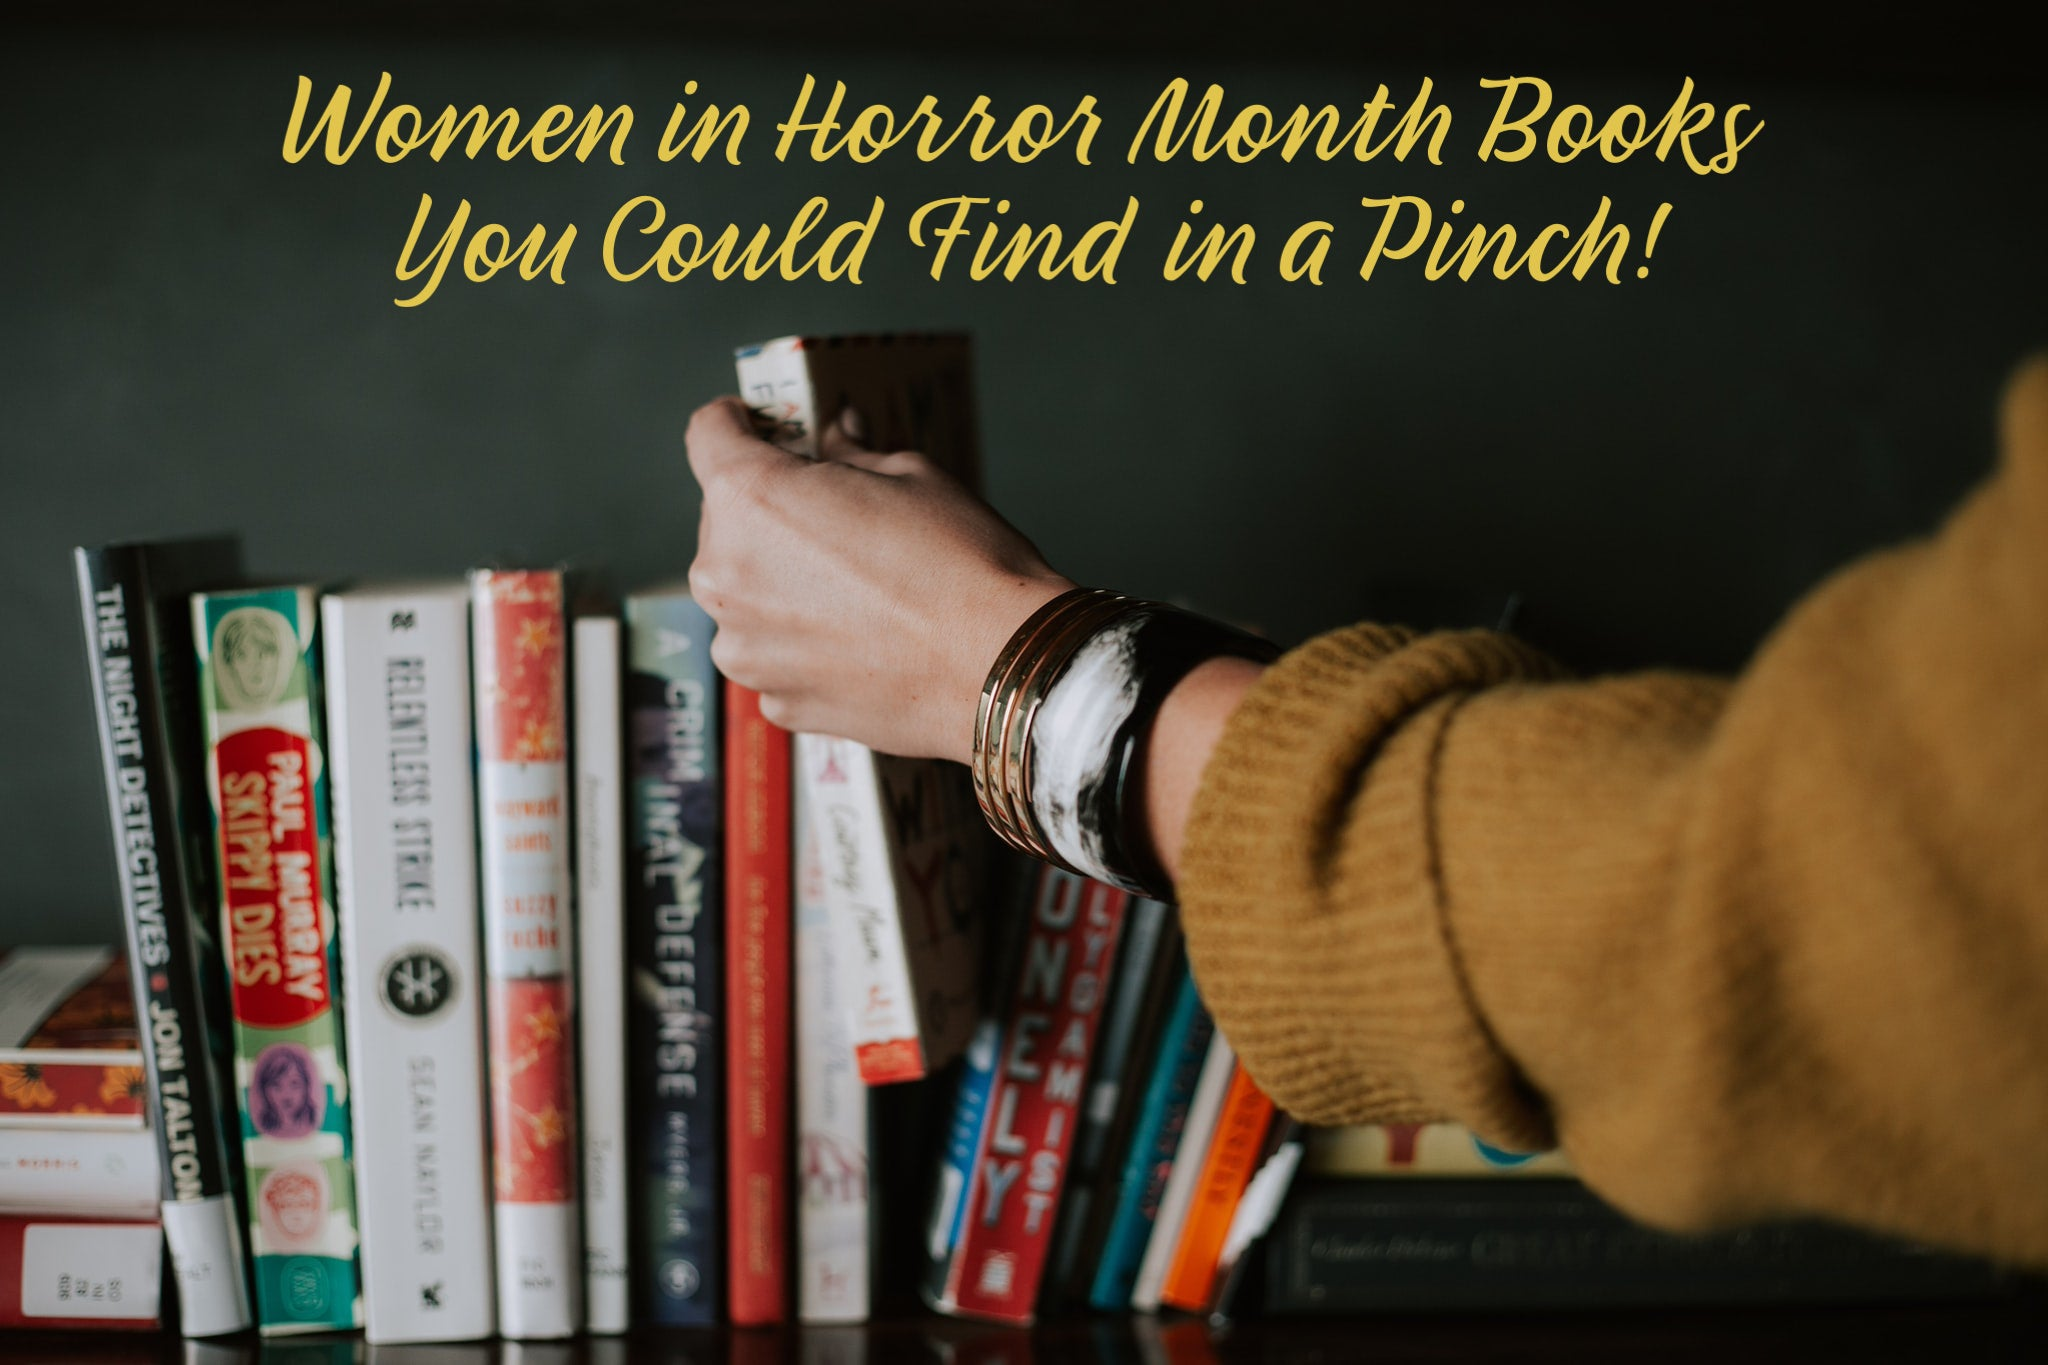 Women in Horror Month Books You Could Find in a Pinch!